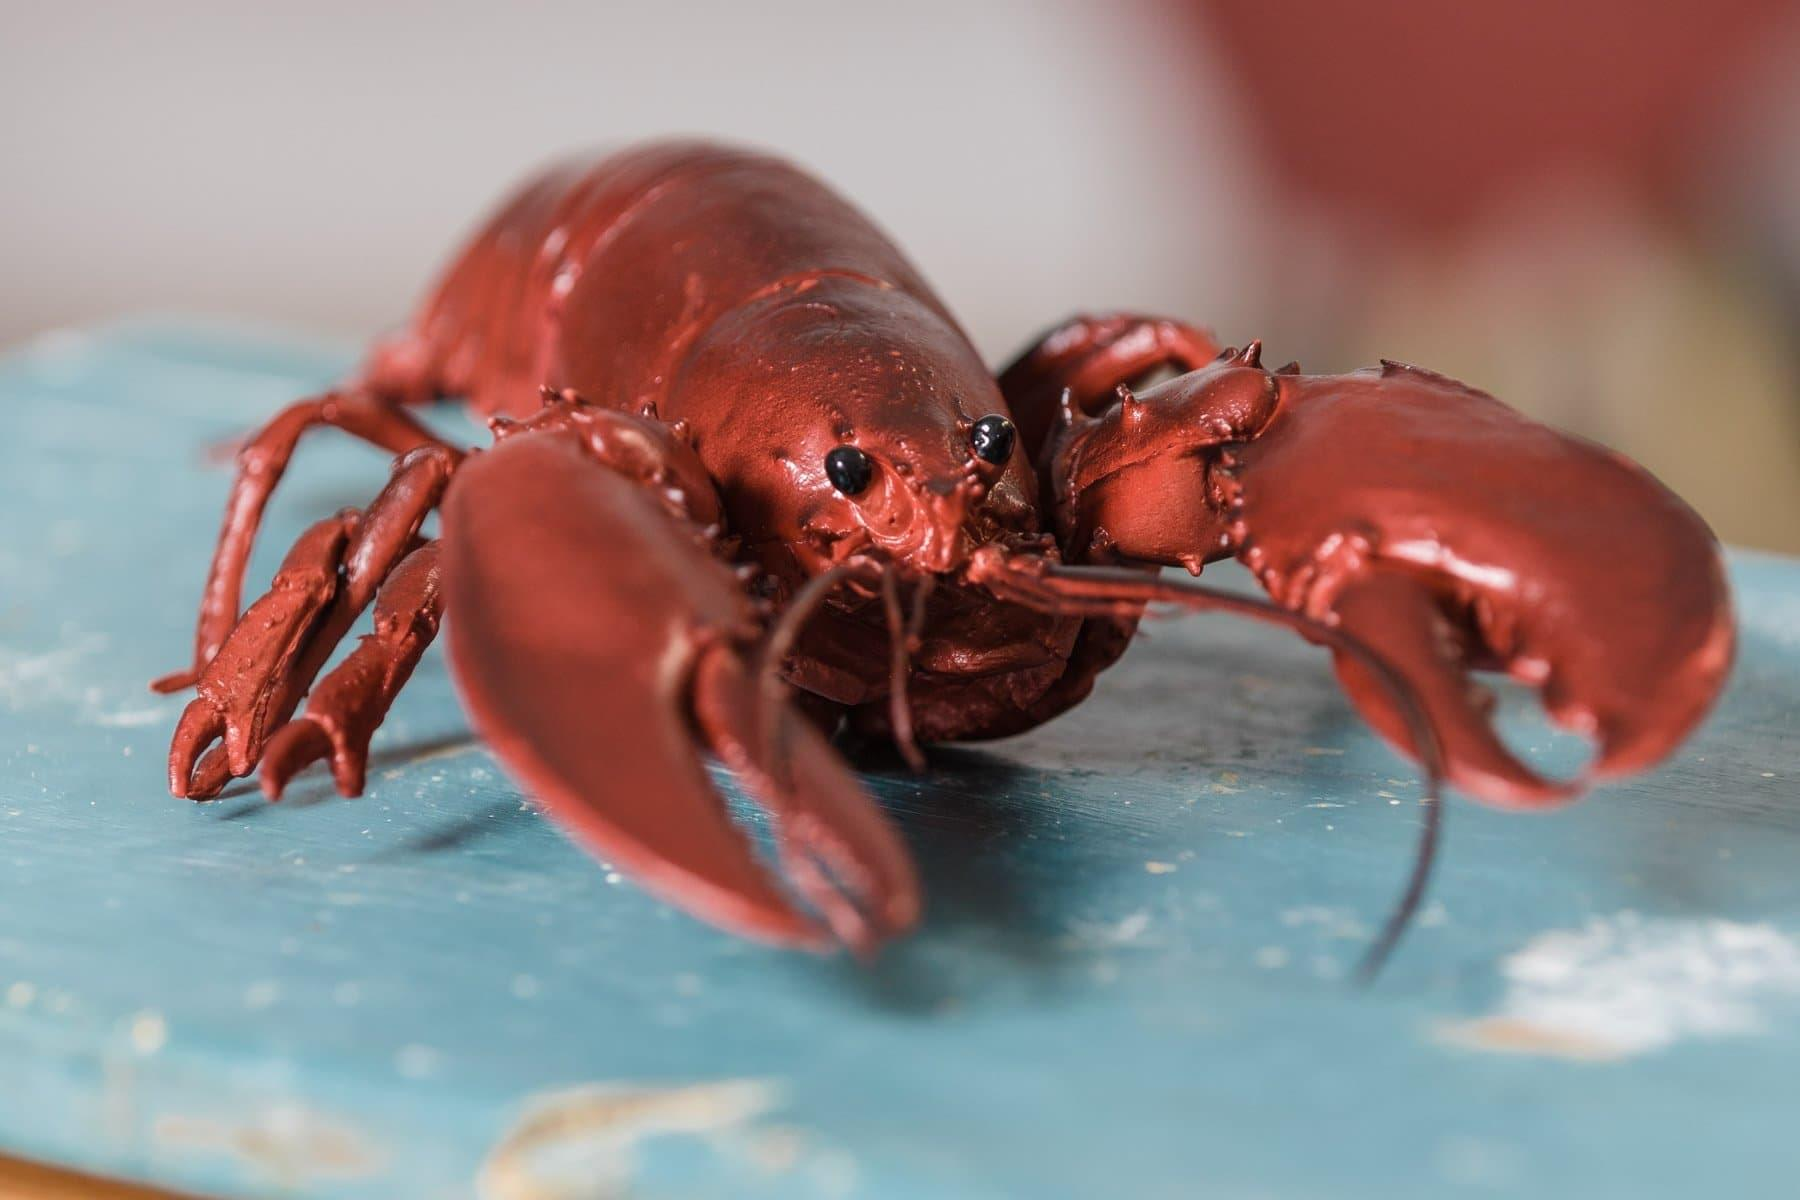 Our very own taxidermy lobster, 'Satan's Pinch'